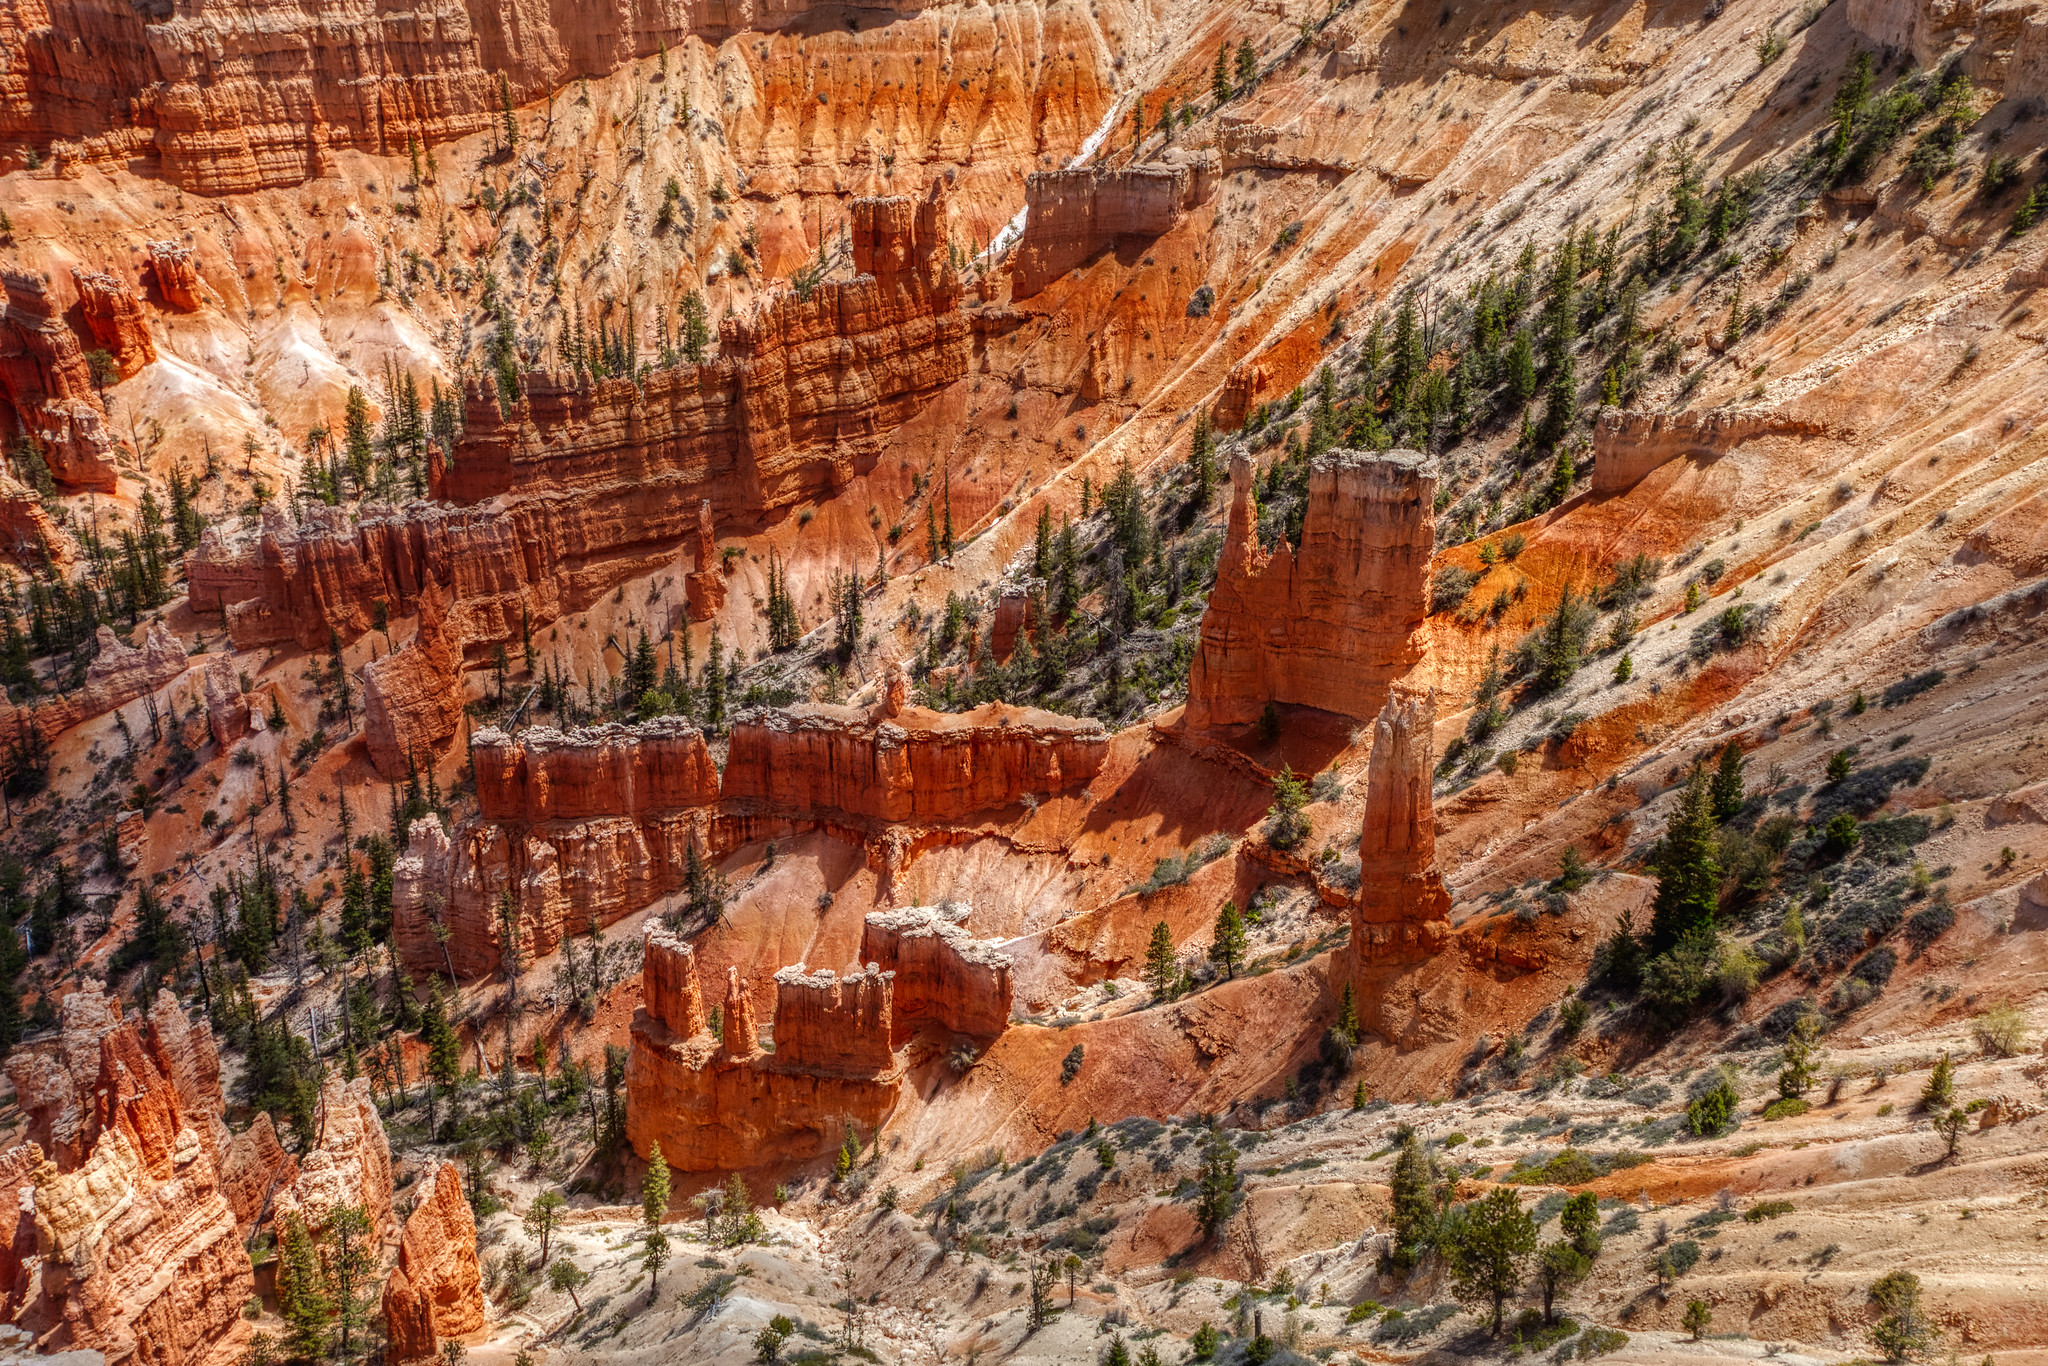 Bryce Canyon National Park: Taking Photos of Utah's Hoodoos